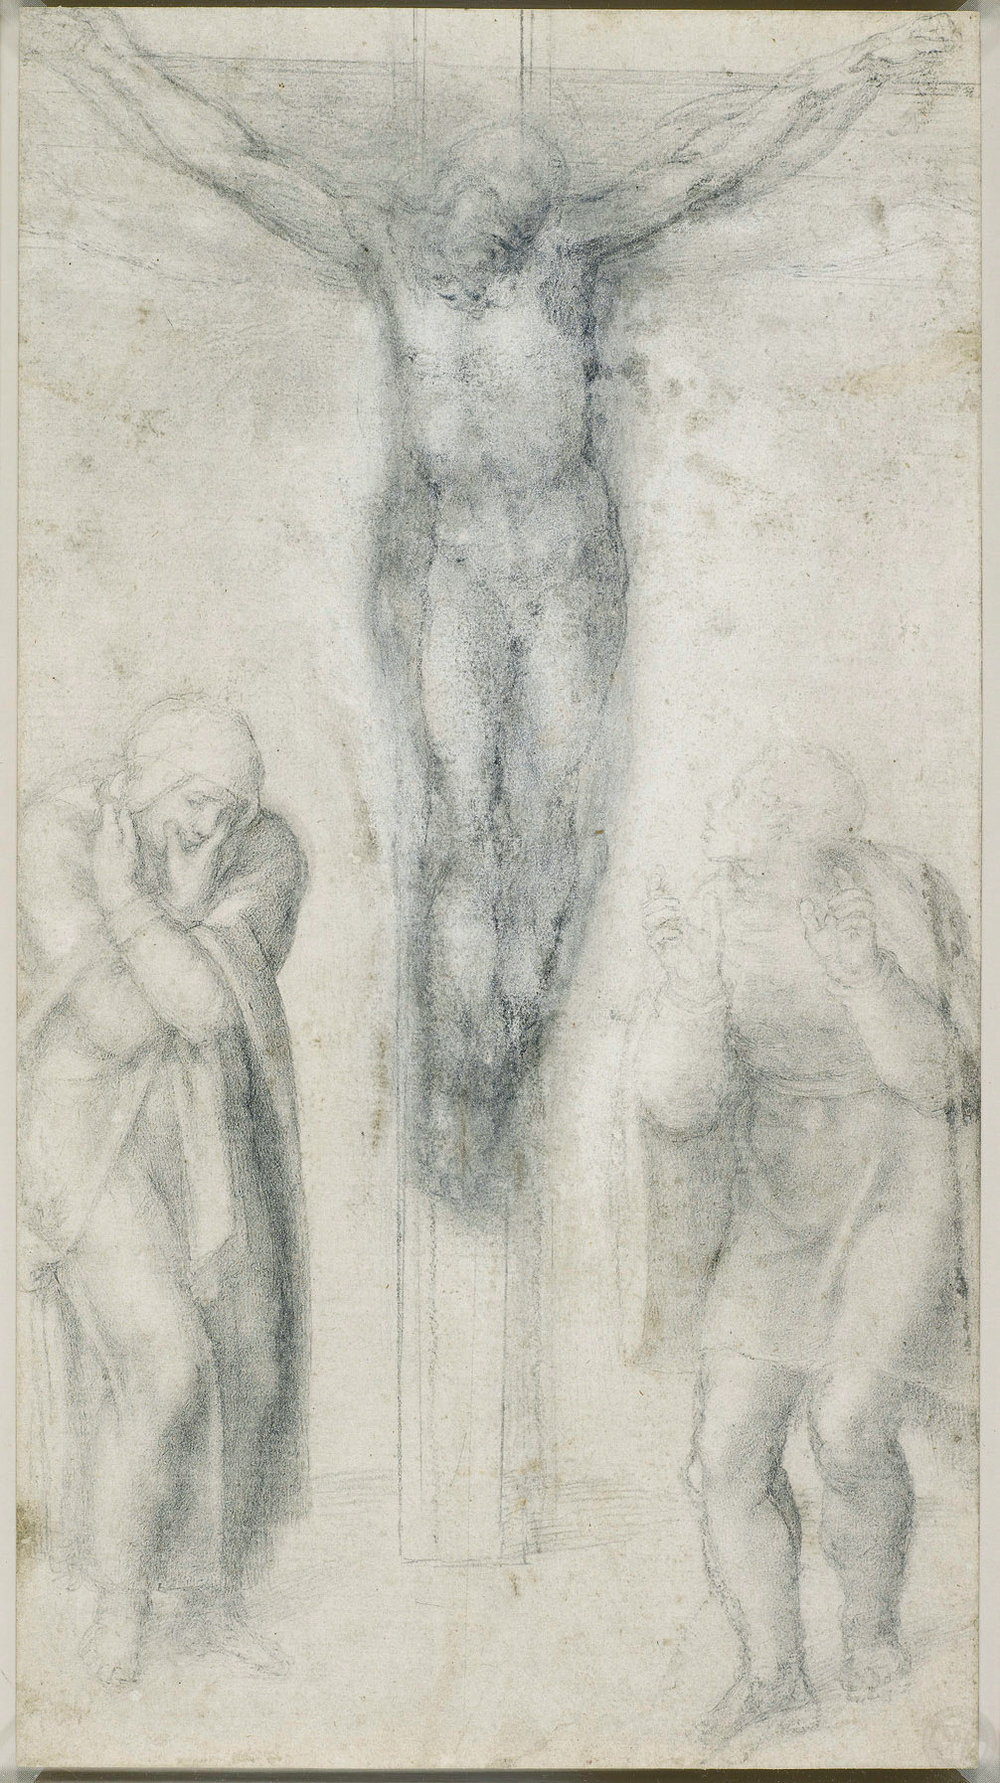 c.1562 Black chalk 38.2 x 21.0 cm  A drawing of the crucified Christ upon a T-shaped cross, flanked by the Virgin Mary on the left, and St John on the right.